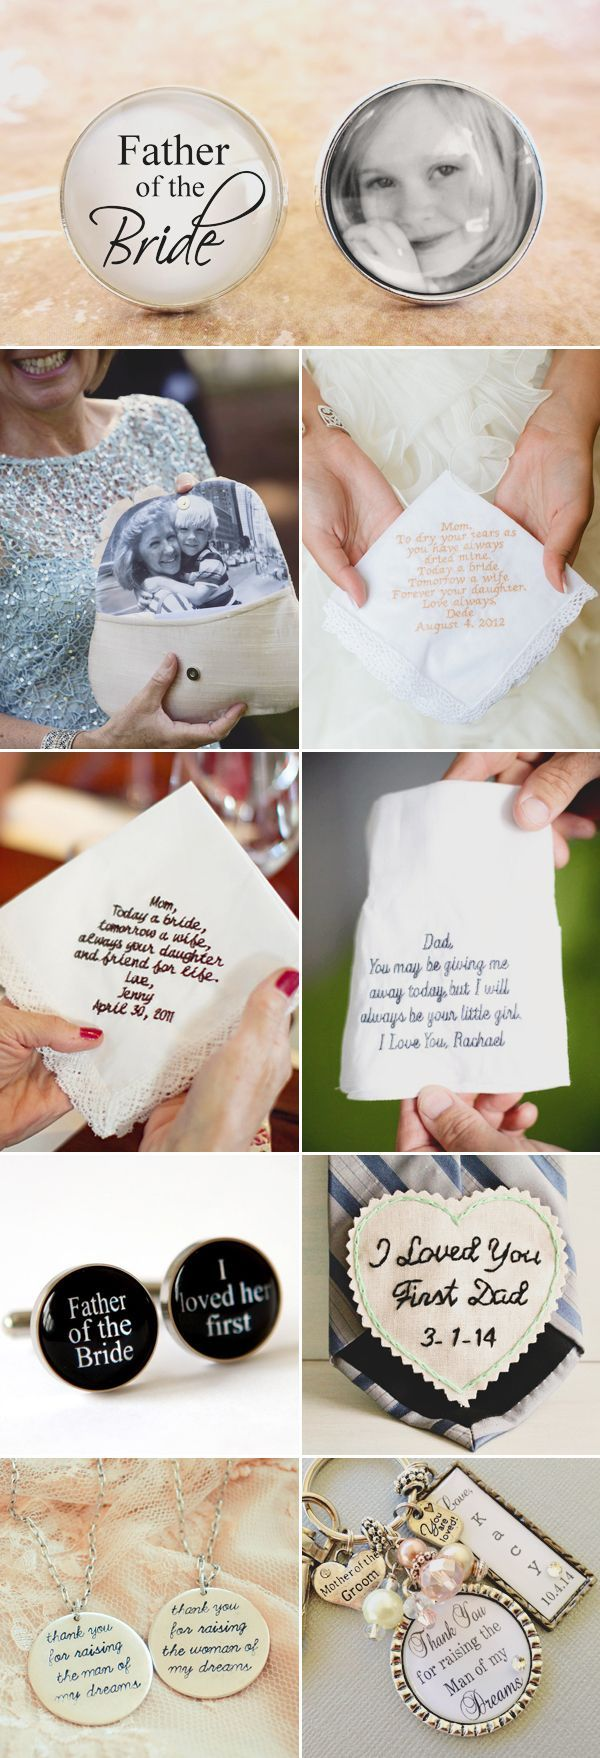 38 Creative Ways to Honor Your Parents at Your Wedding - Special Gifts for Parents